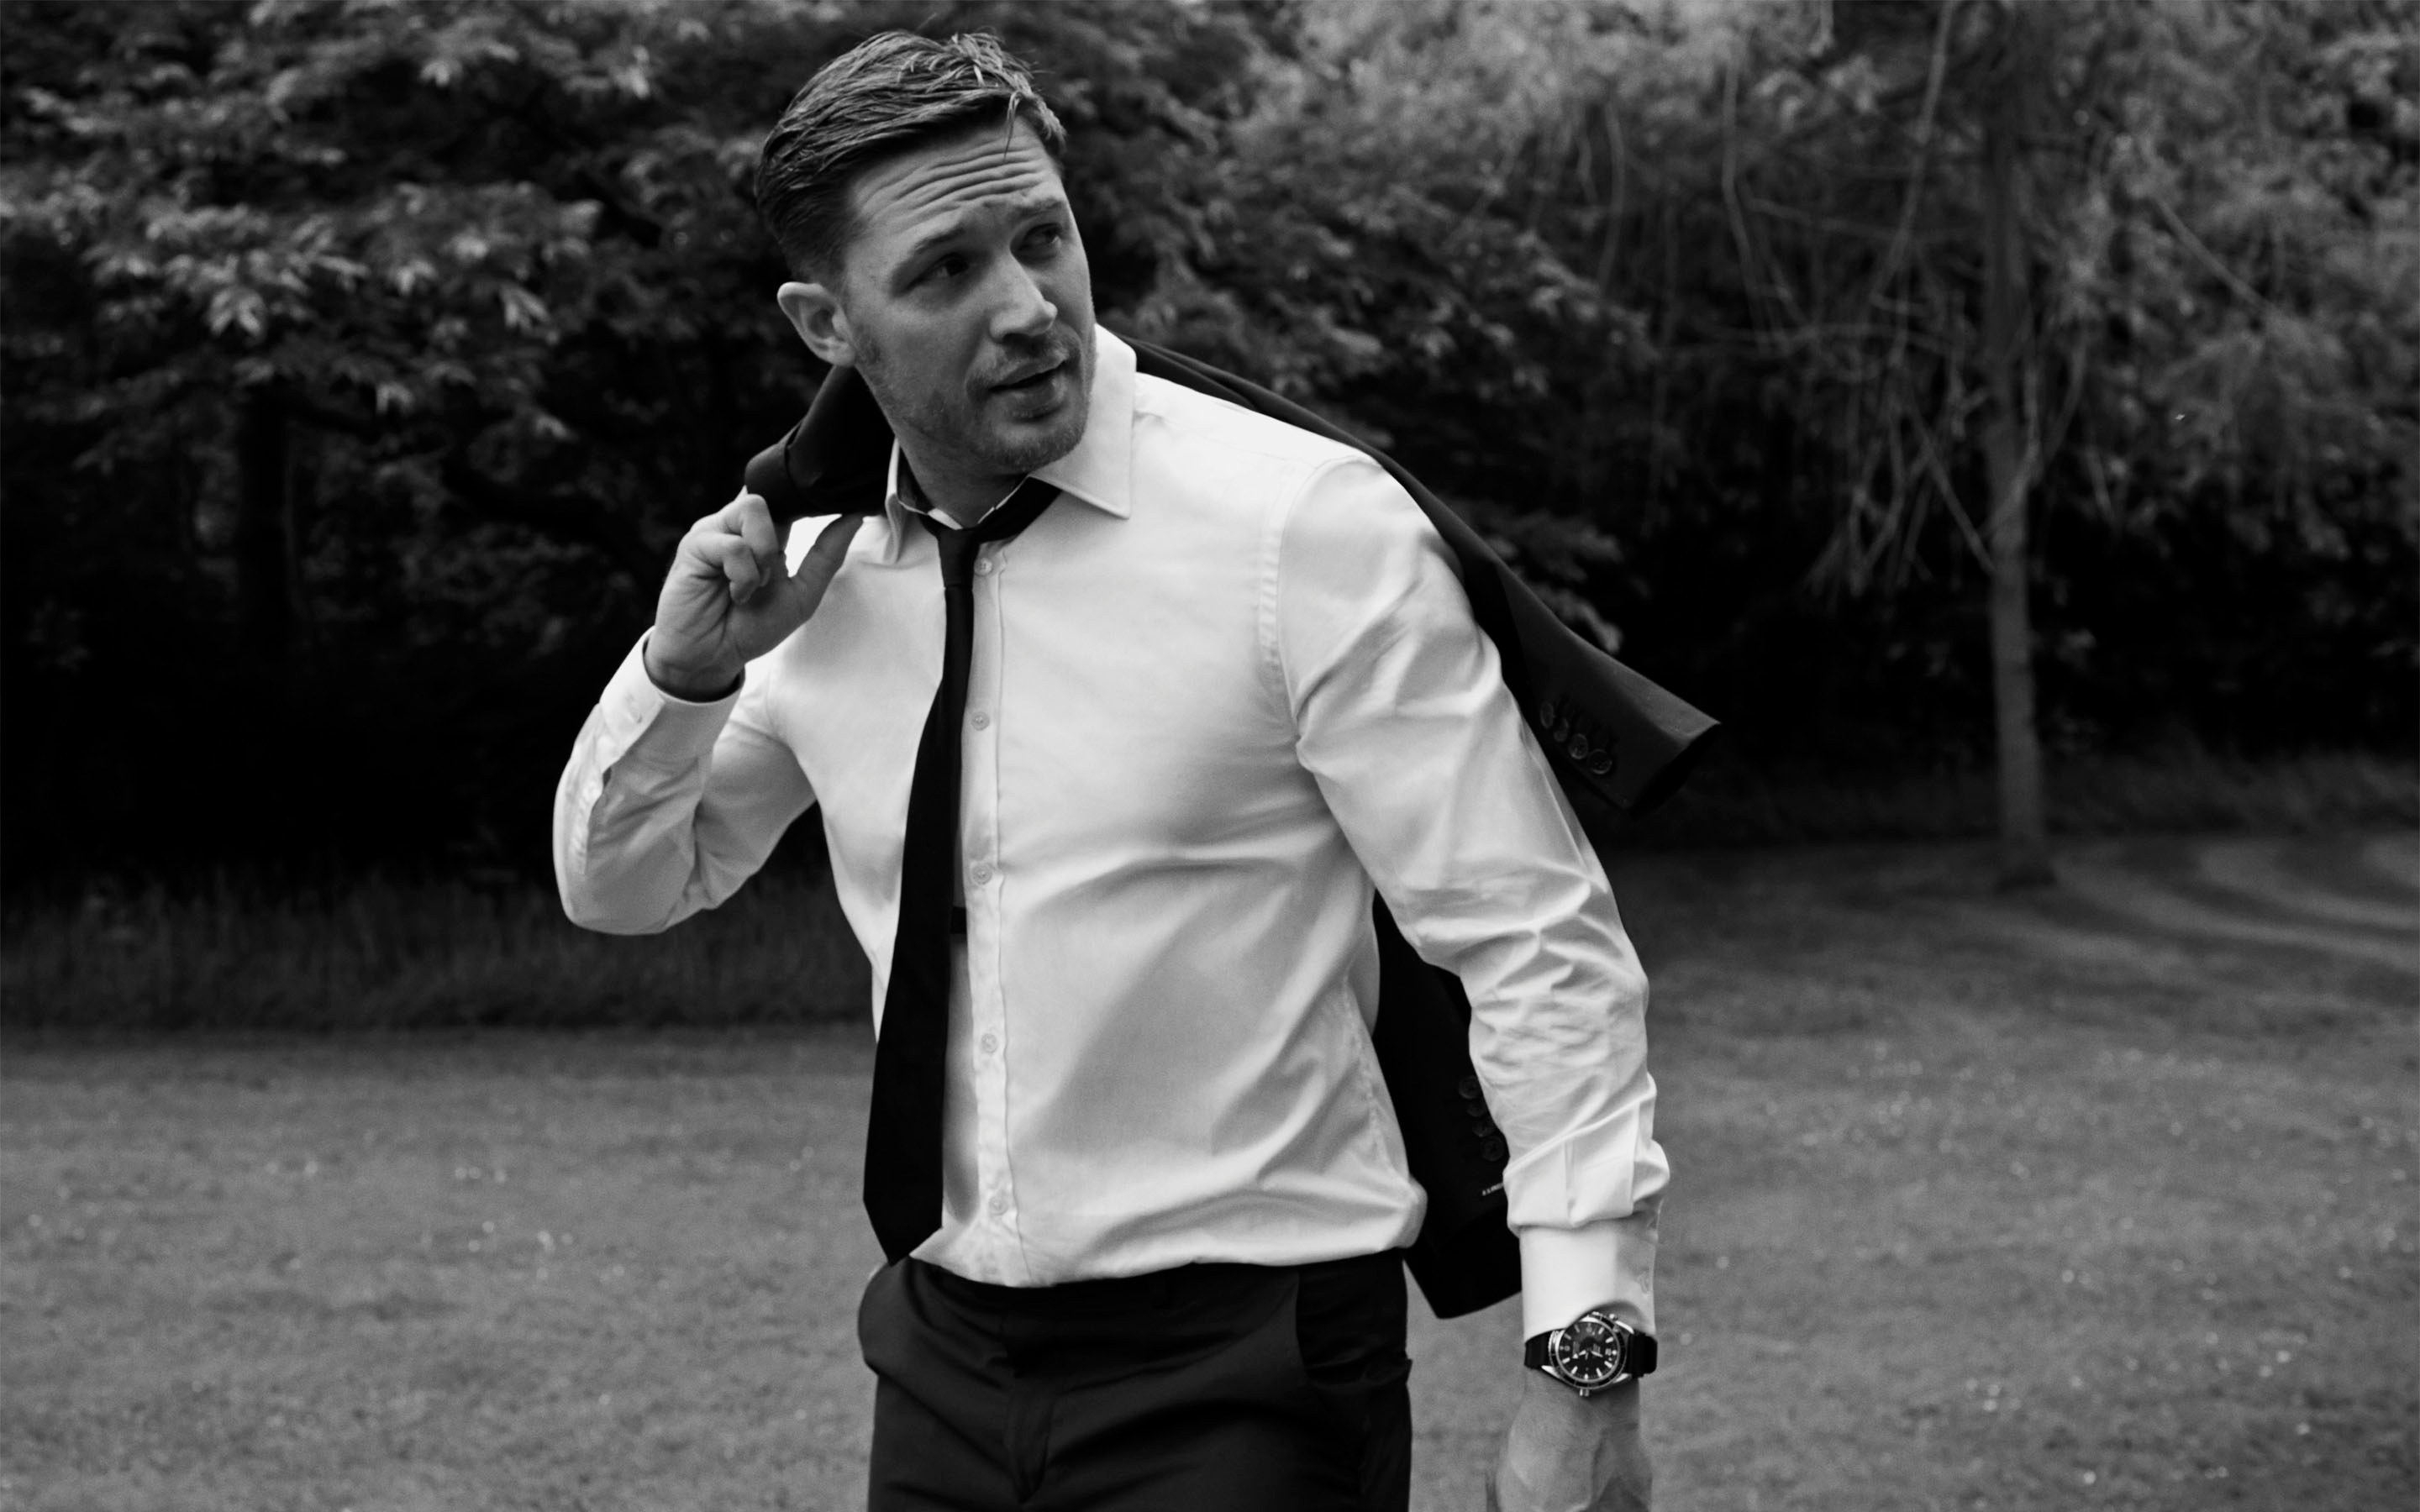 Tom Hardy Hd Wallpaper Background Image 2880x1800 Id 498836 Wallpaper Abyss